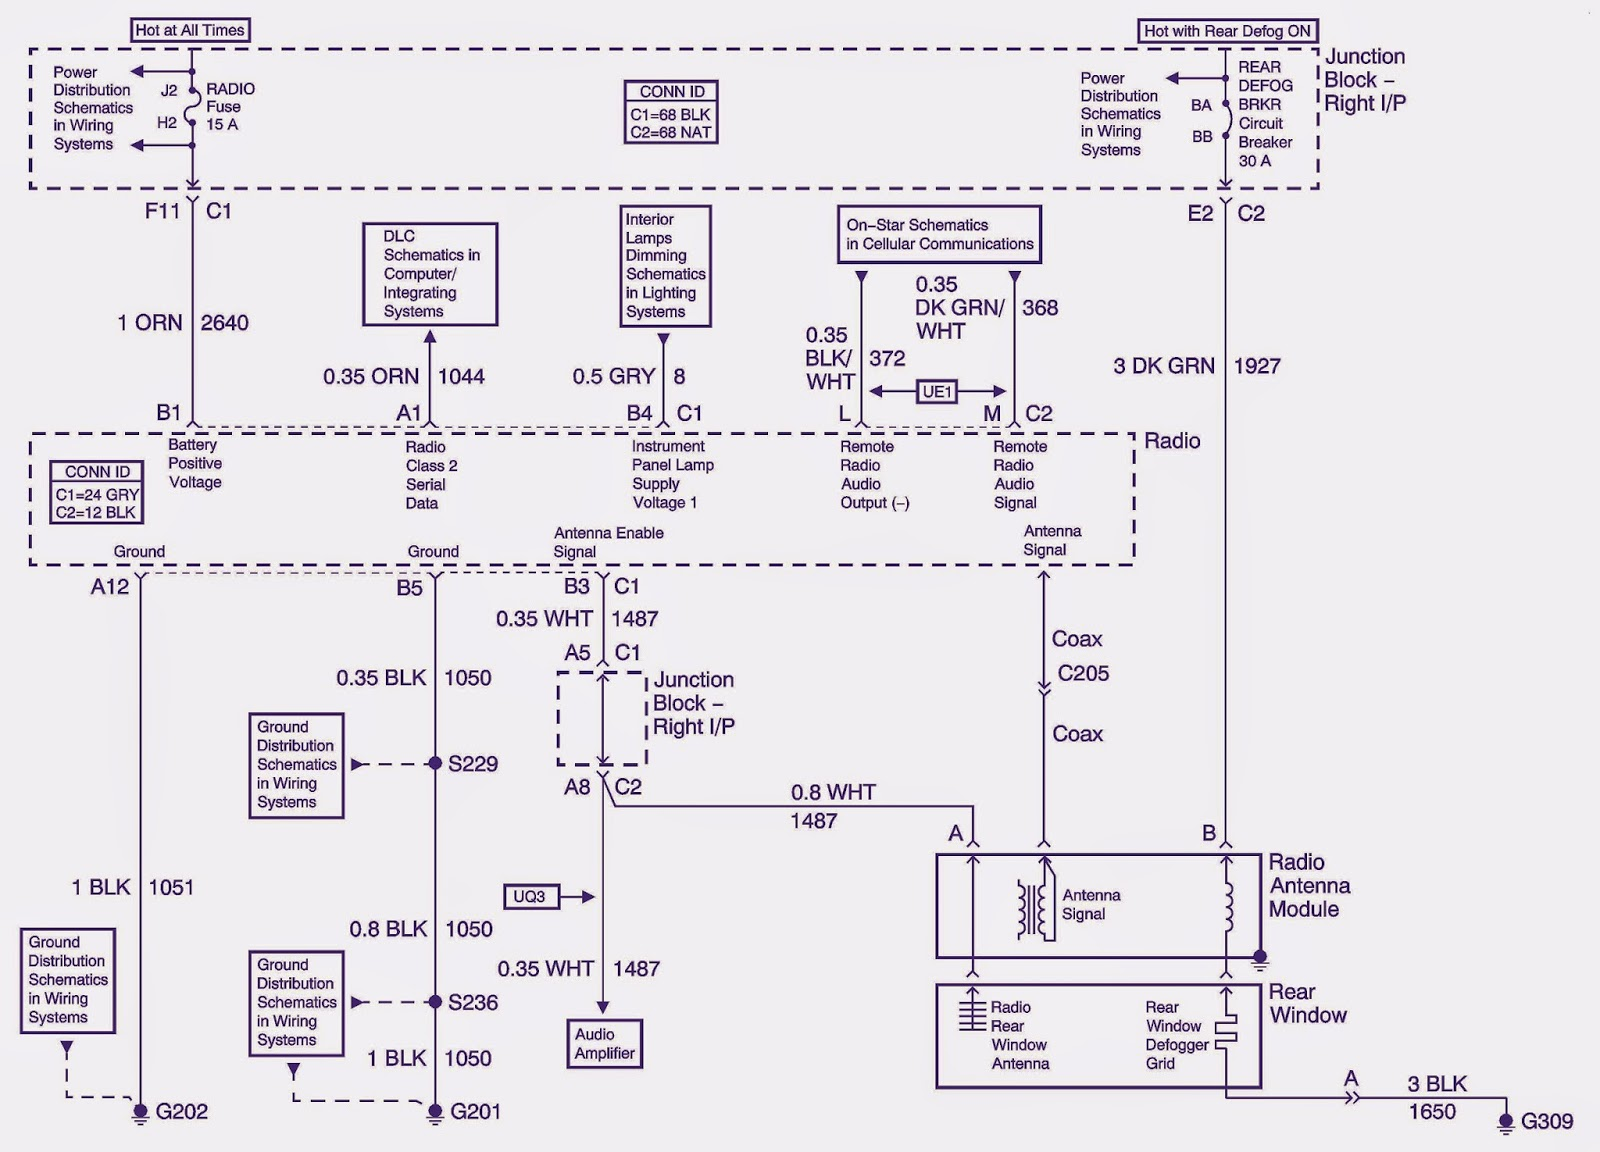 wiring diagram for 1986 chevrolet monte carlo wiring library 2003 monte carlo engine diagram 1997 monte carlo wiring diagram [ 1600 x 1152 Pixel ]